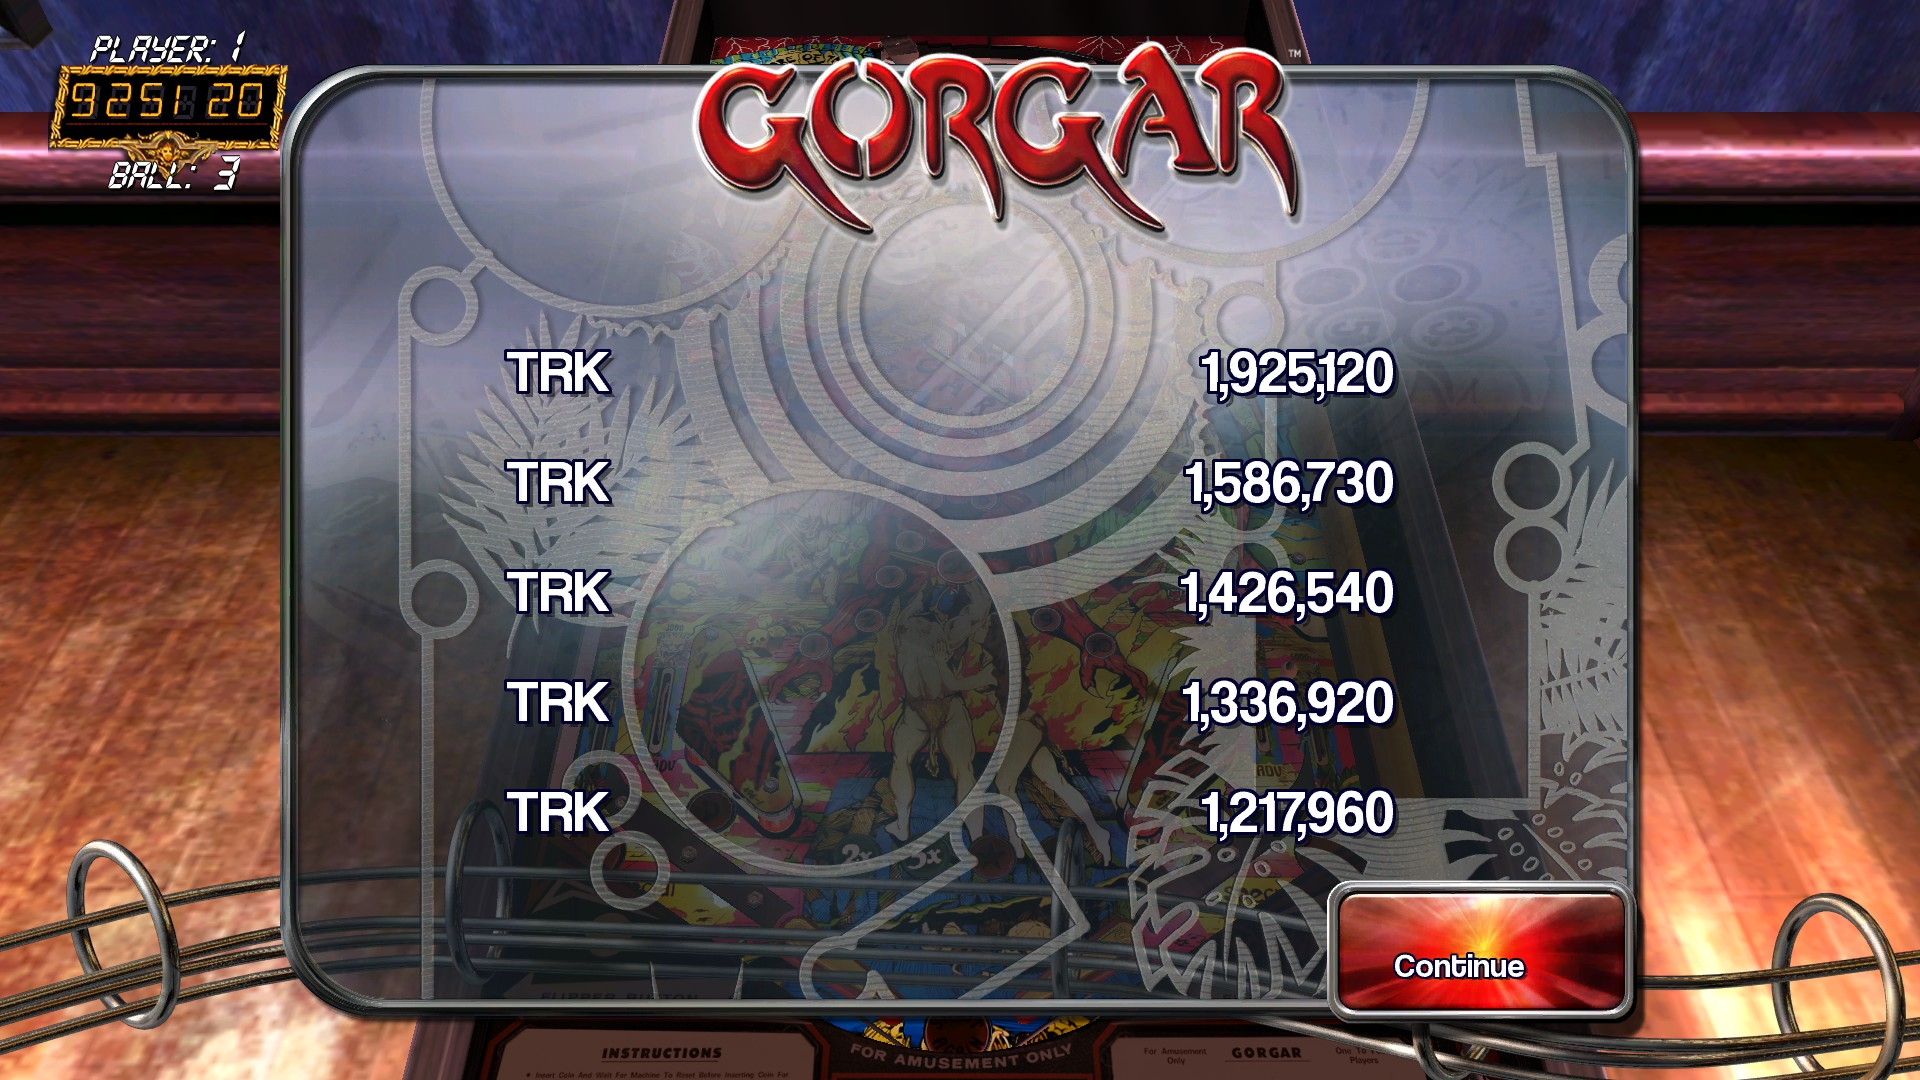 Pinball Arcade: Gorgar 1,925,120 points